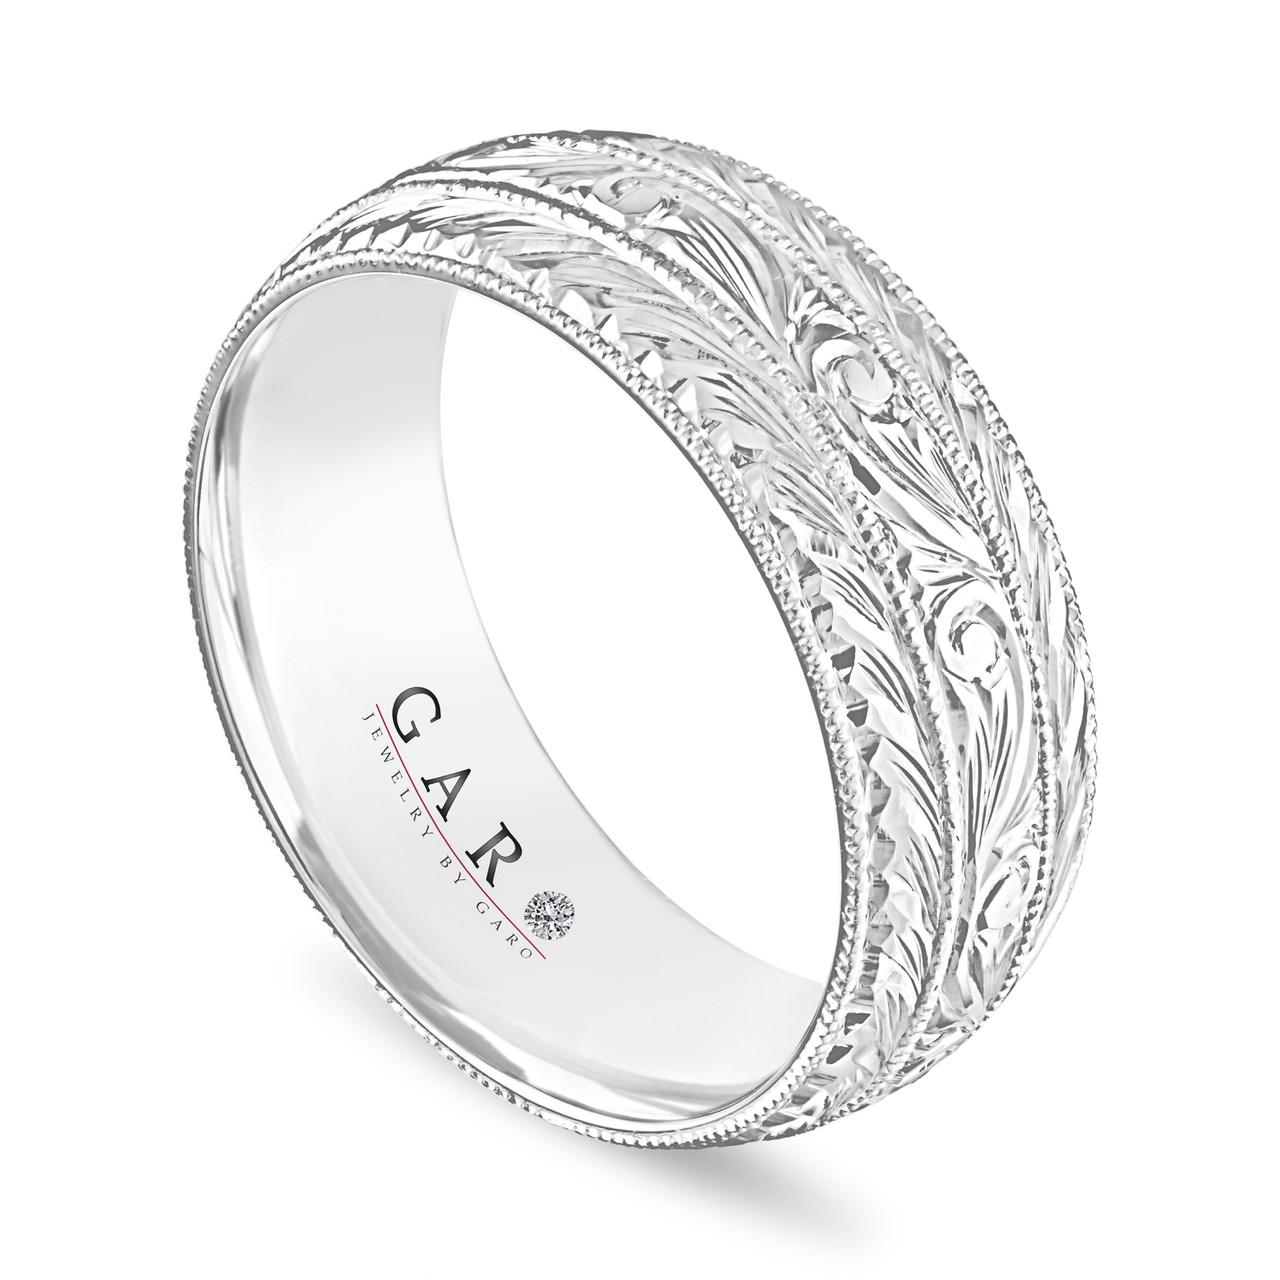 It is a picture of Platinum Hand Engraved Wedding Band, Mens 39 mm Wedding Ring, Vintage Antique Style Unique Handmade